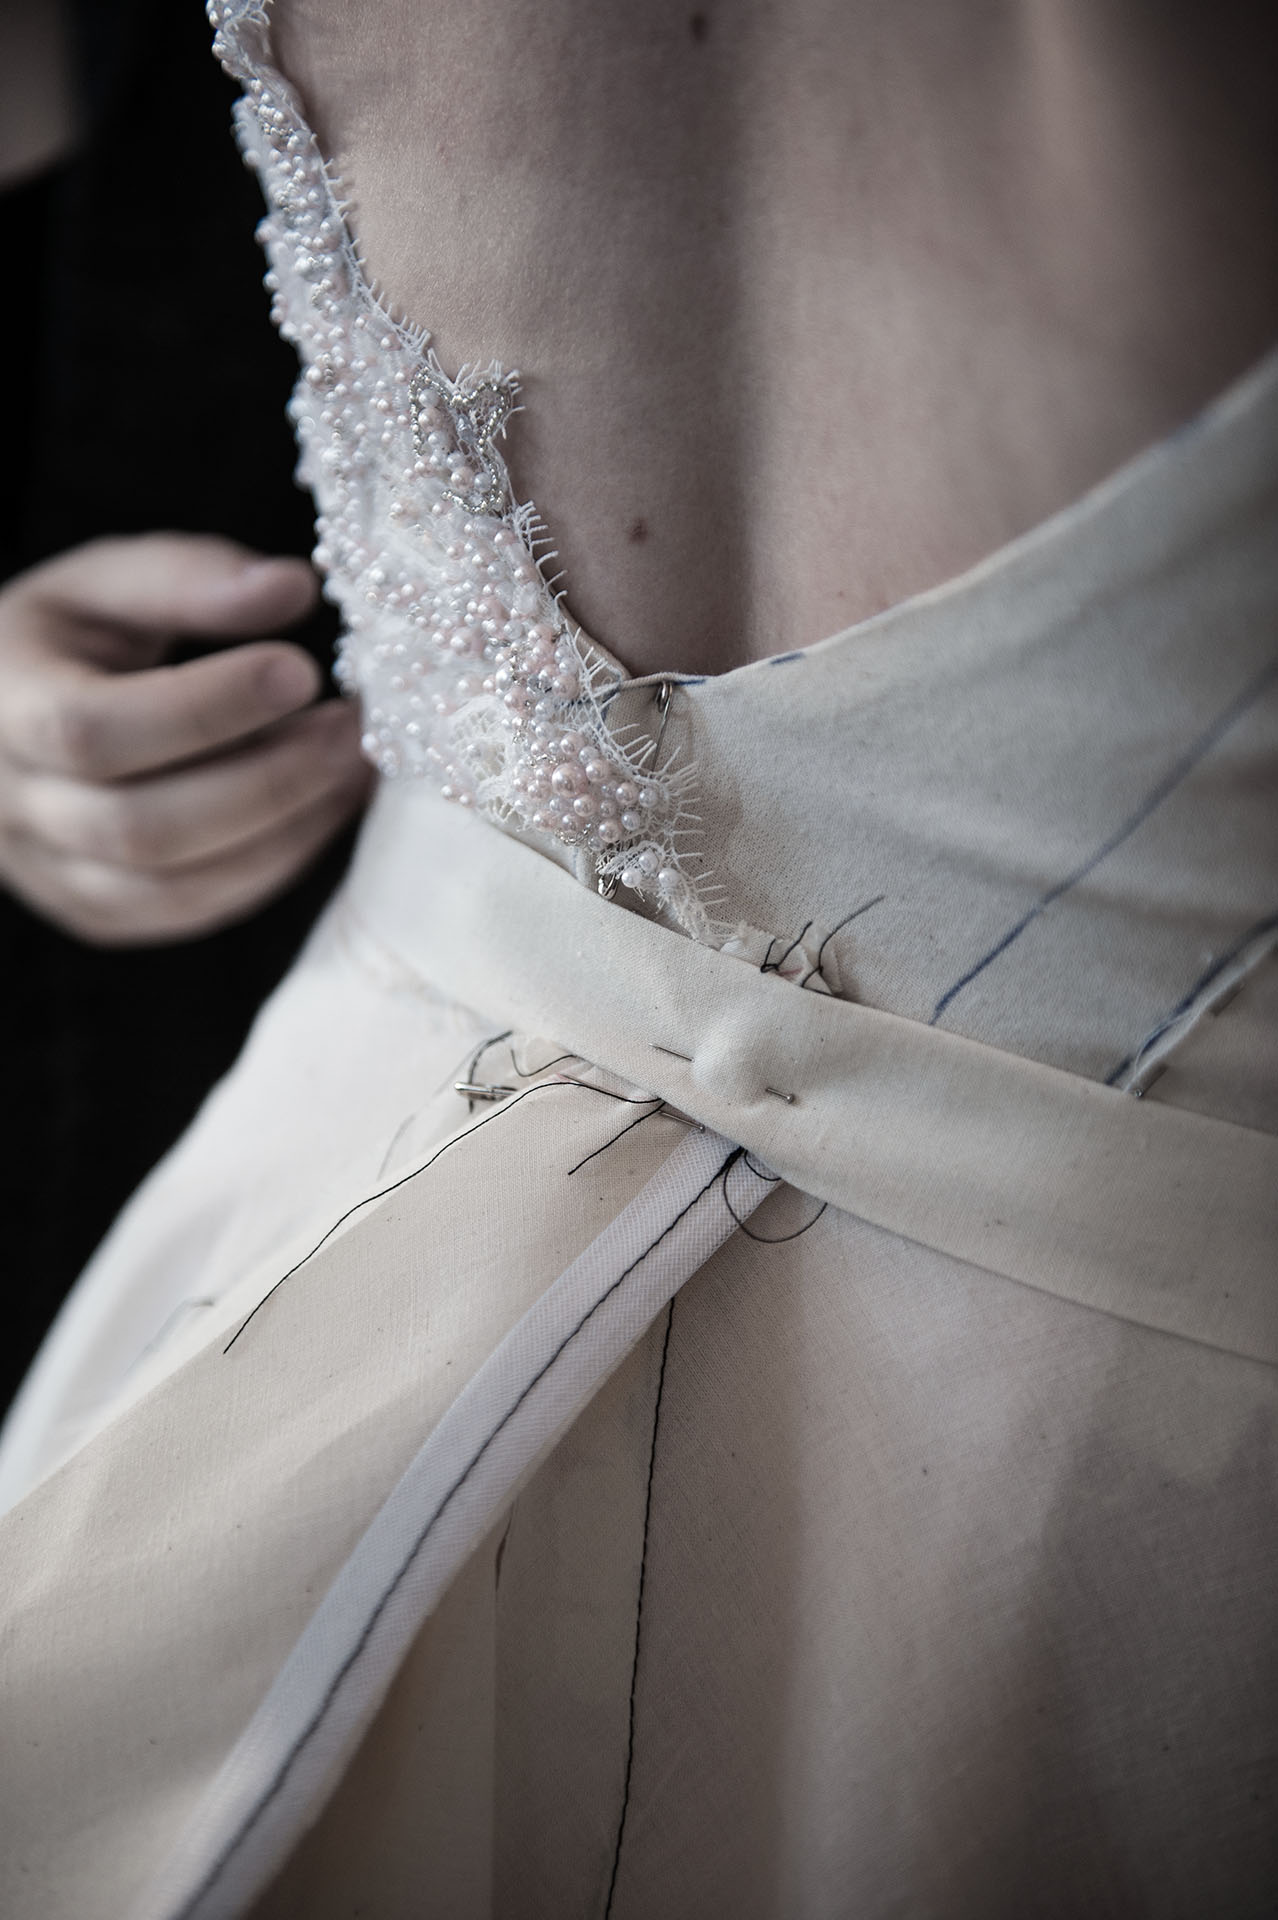 we don't put a size tag on - When visiting our studio, you can preview samples from our past collections. We will walk you through exactly how each style will fit you when it is your size and correctly proportioned to your body. We produce gowns to fit any size. Your wedding dress will be the perfect fit for your body and your personality.